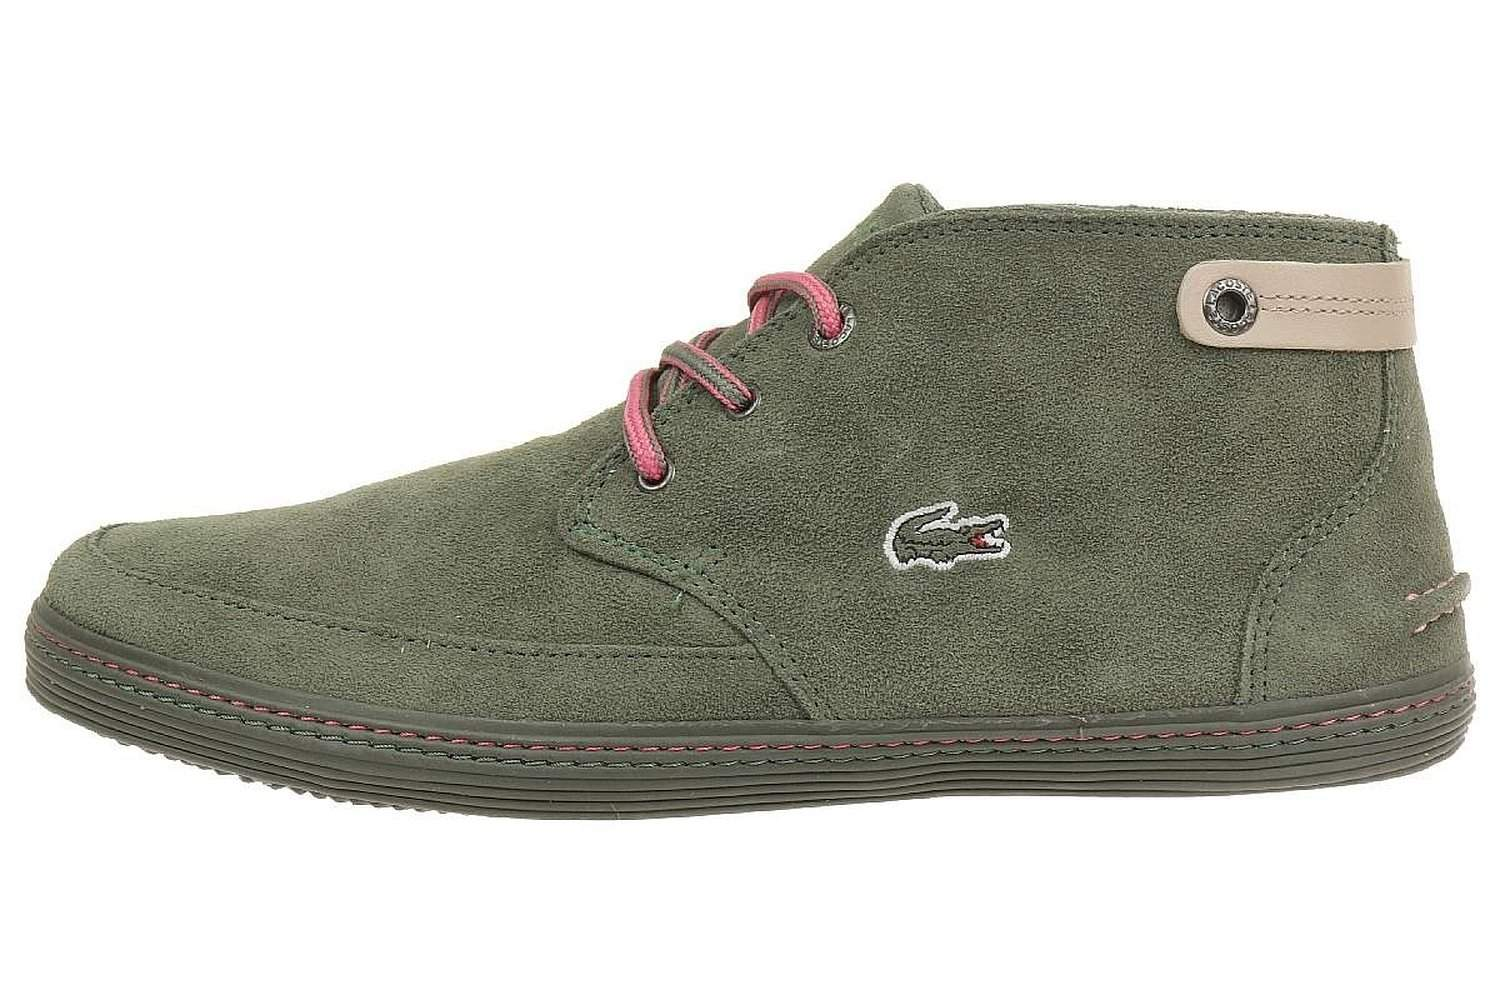 fed7b9281 Lacoste Womens Khaki Green Pink Suede Clavel Trainers Shoes